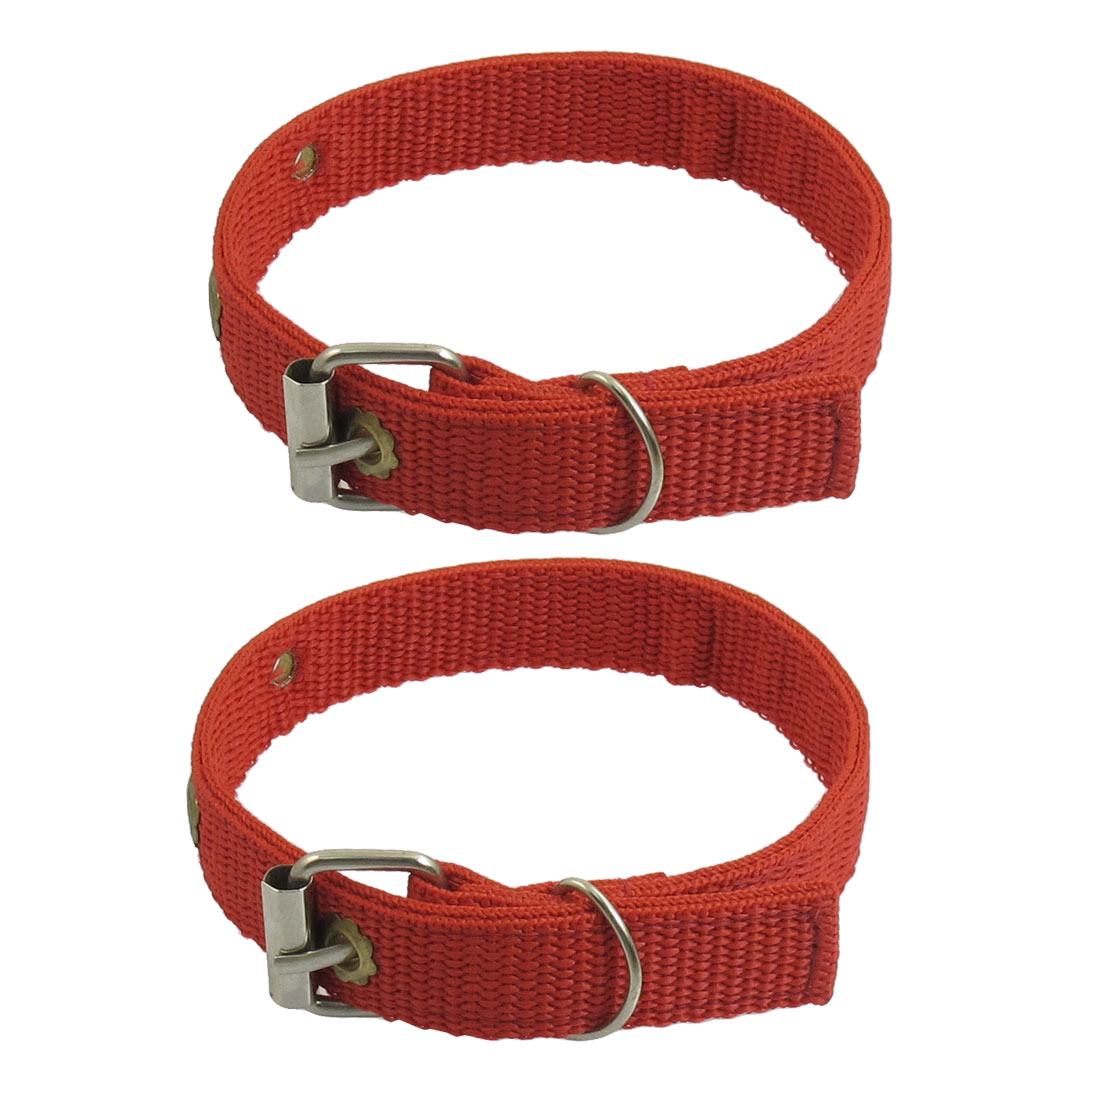 "2 Pcs One Pin Buckle Fabric 0.8"" Width Strap Collar for Pet Dog"